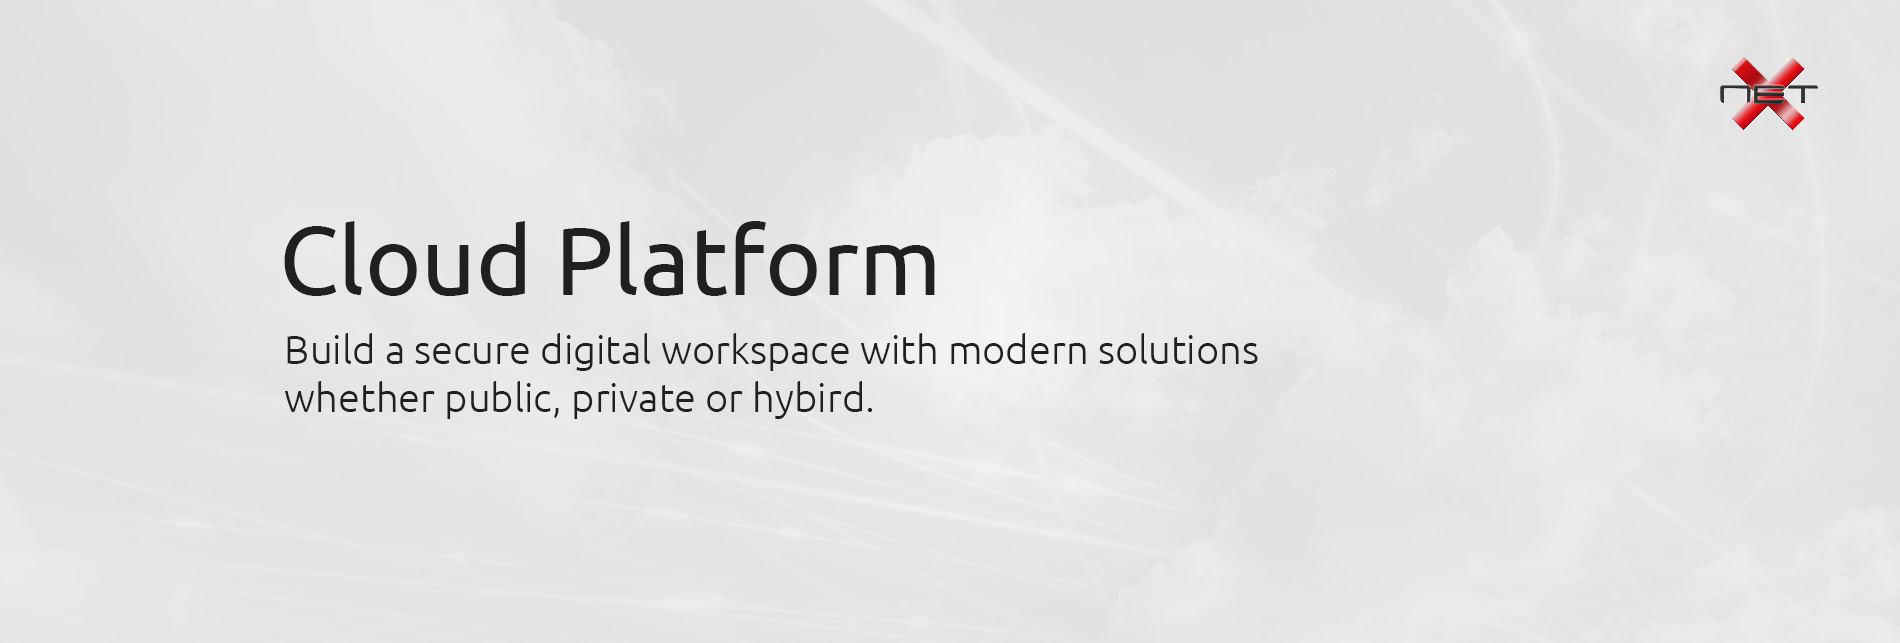 Cloud Platform - NetX Information Systems Banner